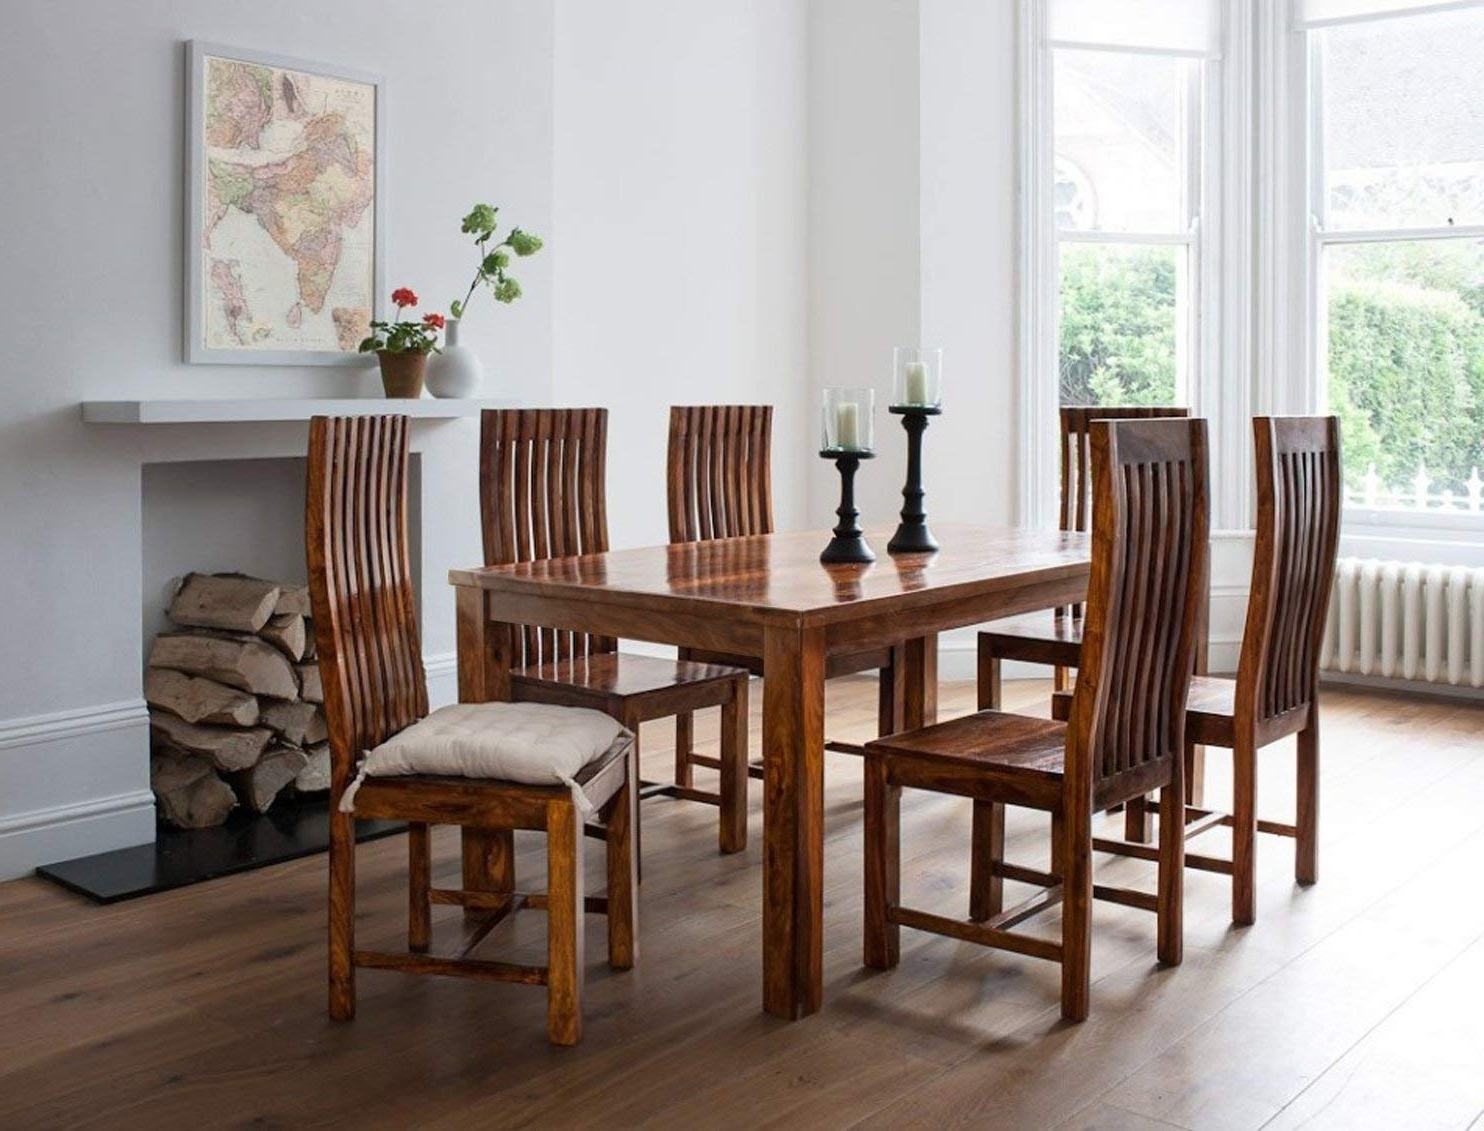 6 Chair Dining Table Sets With Regard To Trendy Lifeestyle Handcrafted Sheesham Wood 6 Seater Dining Set (Honey (View 8 of 25)